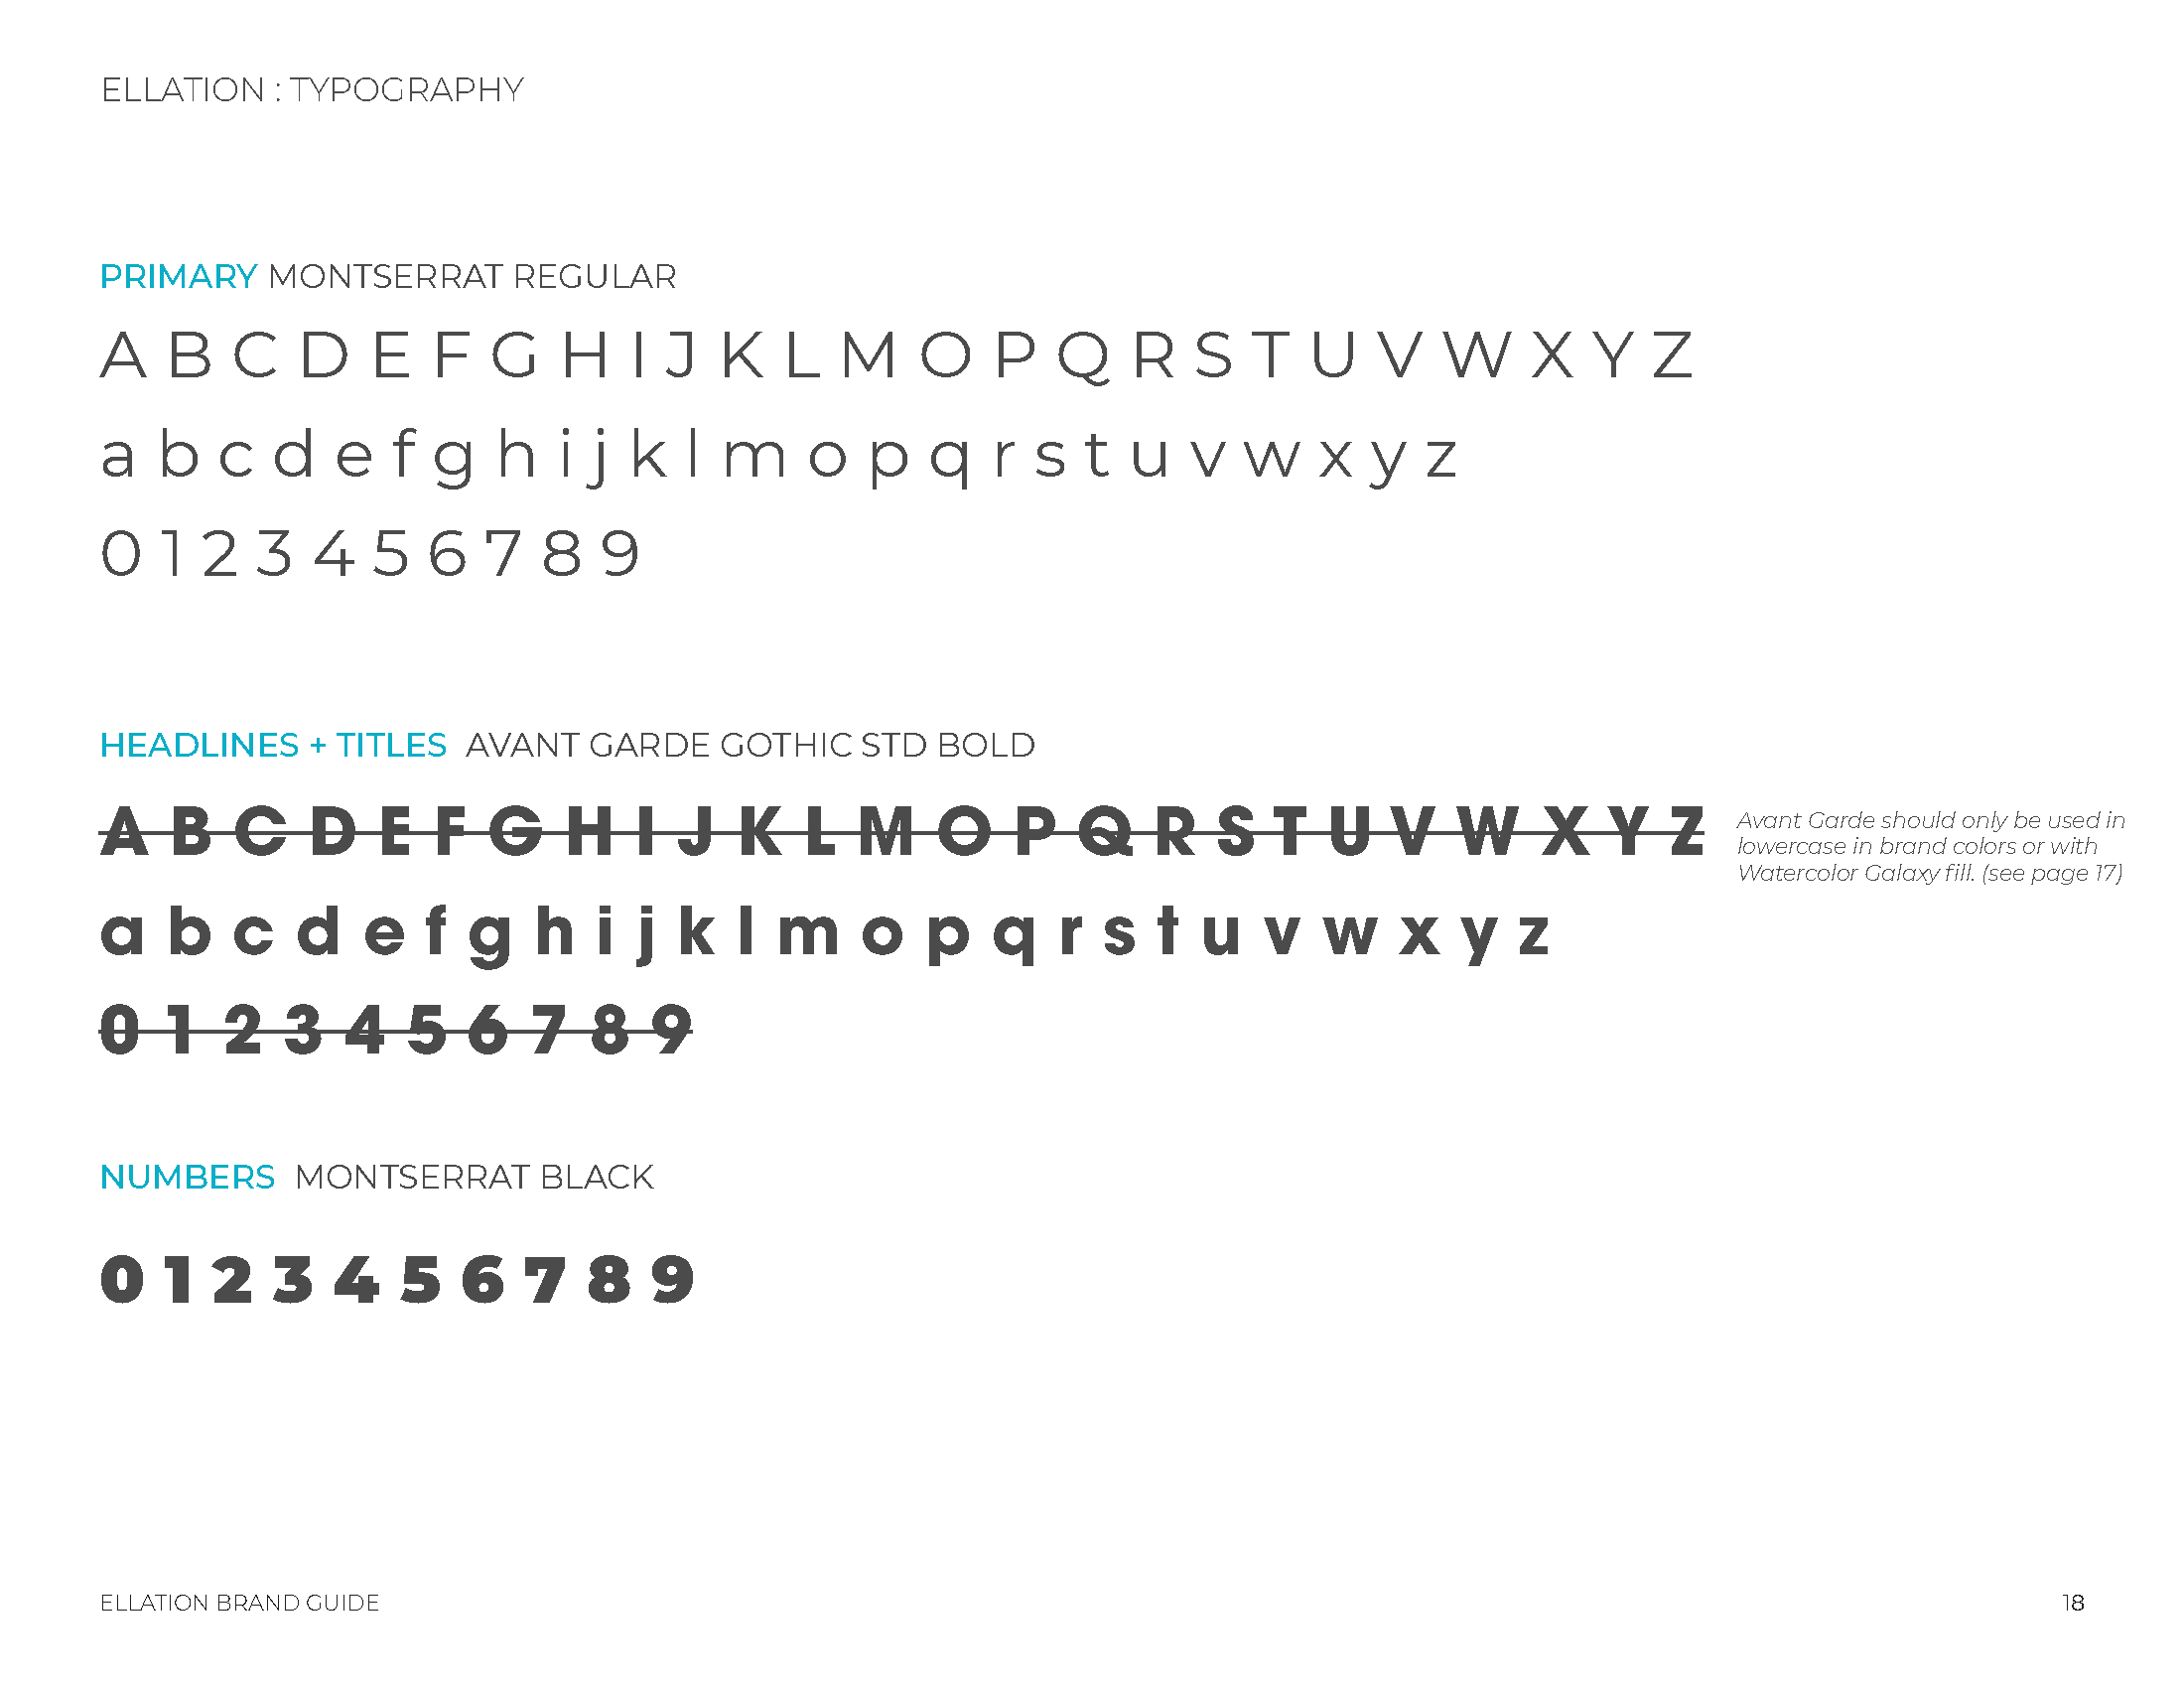 Ellation-Style Guide_Page_19.png